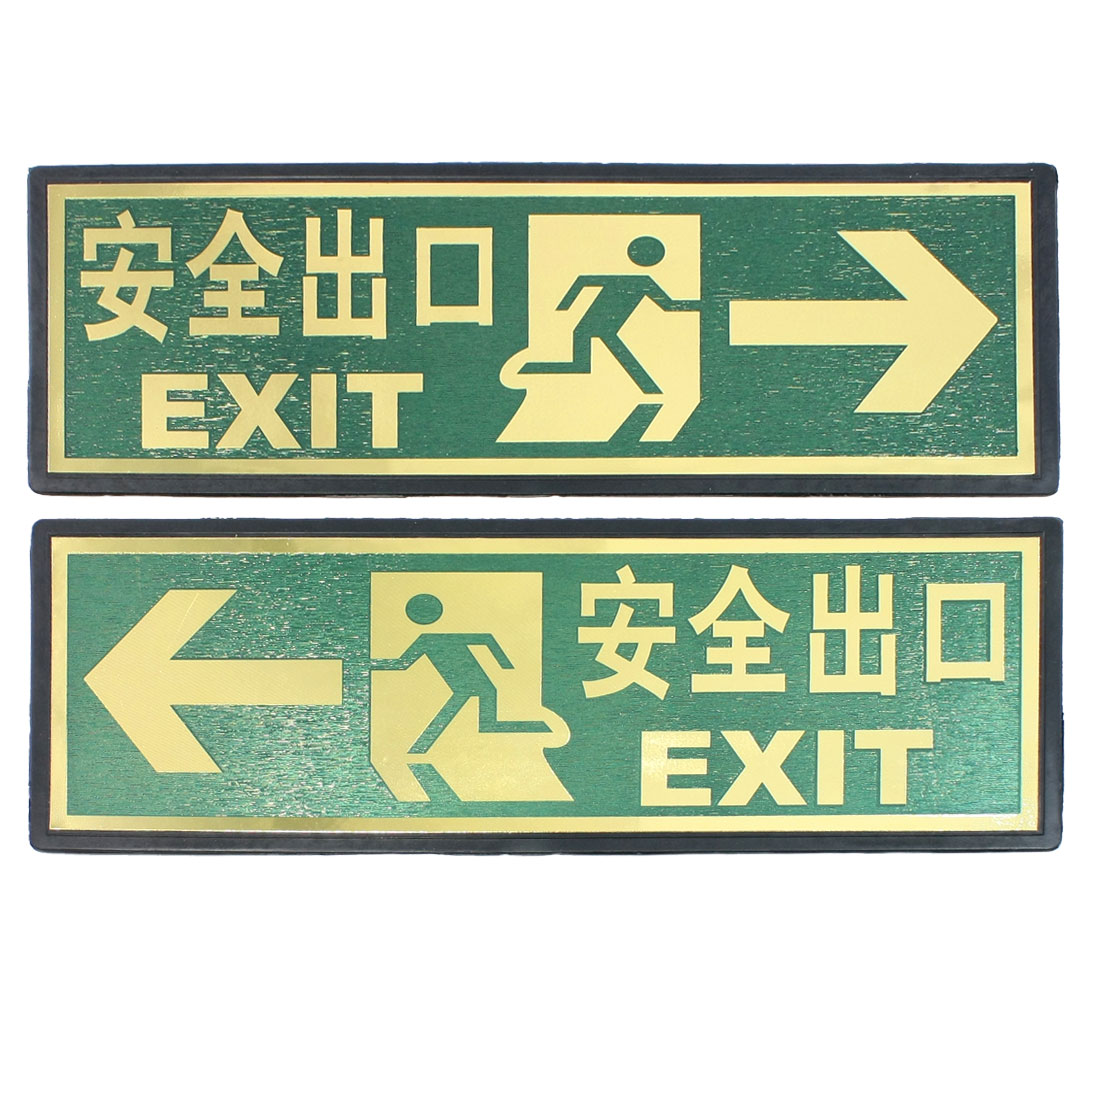 2 Pieces Green Gold Tone Rectanglar Exit Wall Adhesive Sign